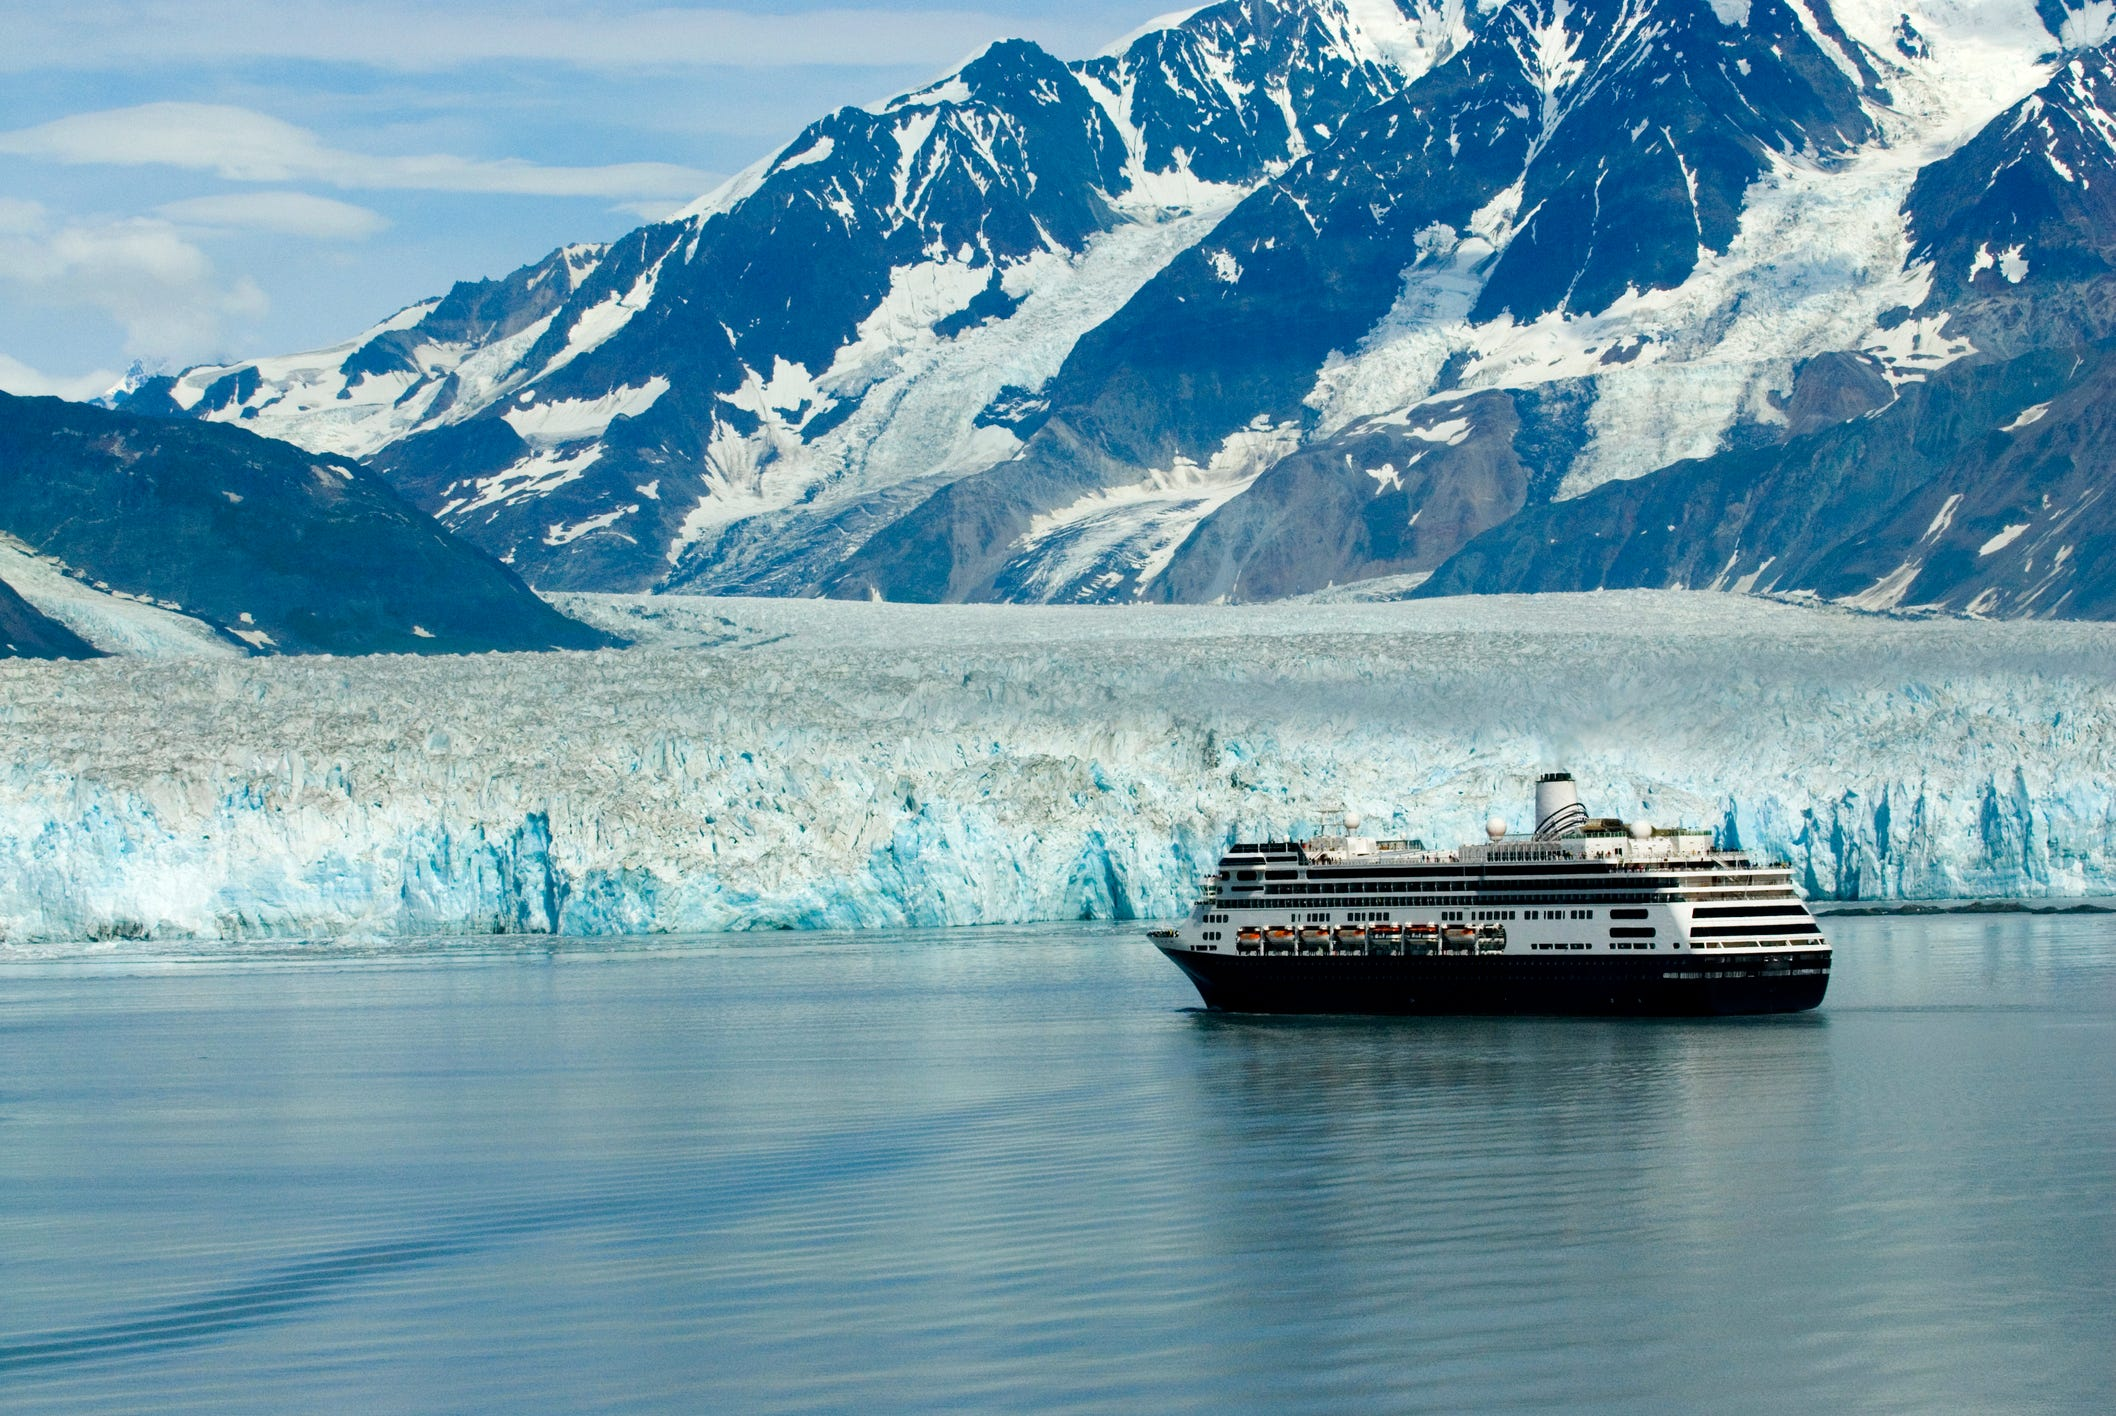 President Biden to sign Alaska tourism act to allow cruise ships to visit the state this year